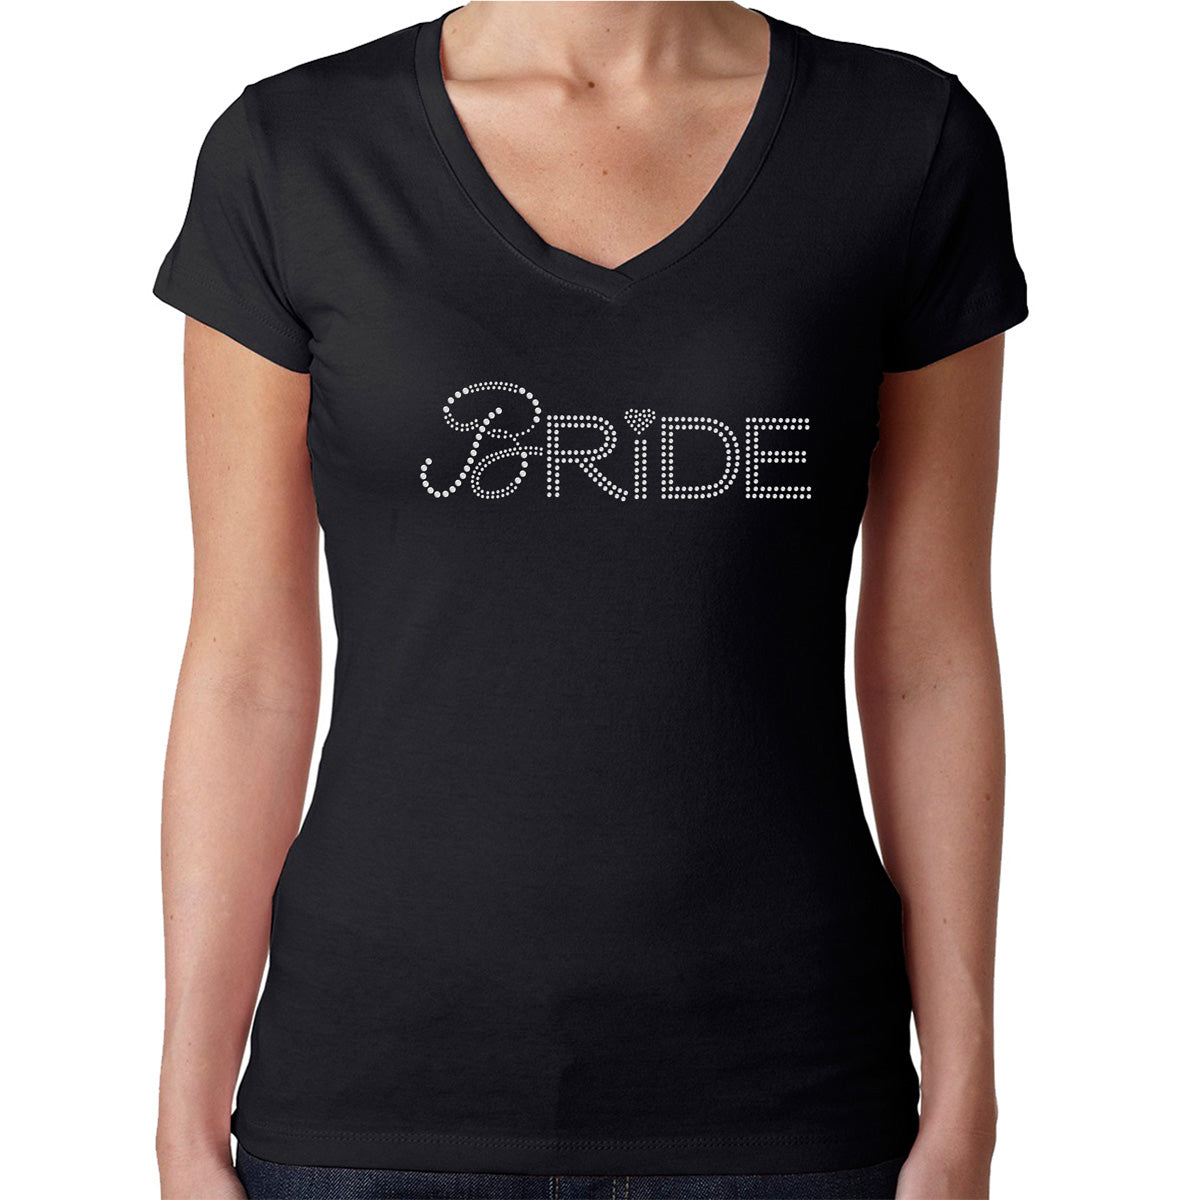 Womens T-Shirt Rhinestone Bling Black Fitted Tee Bride Heart White Sparkle